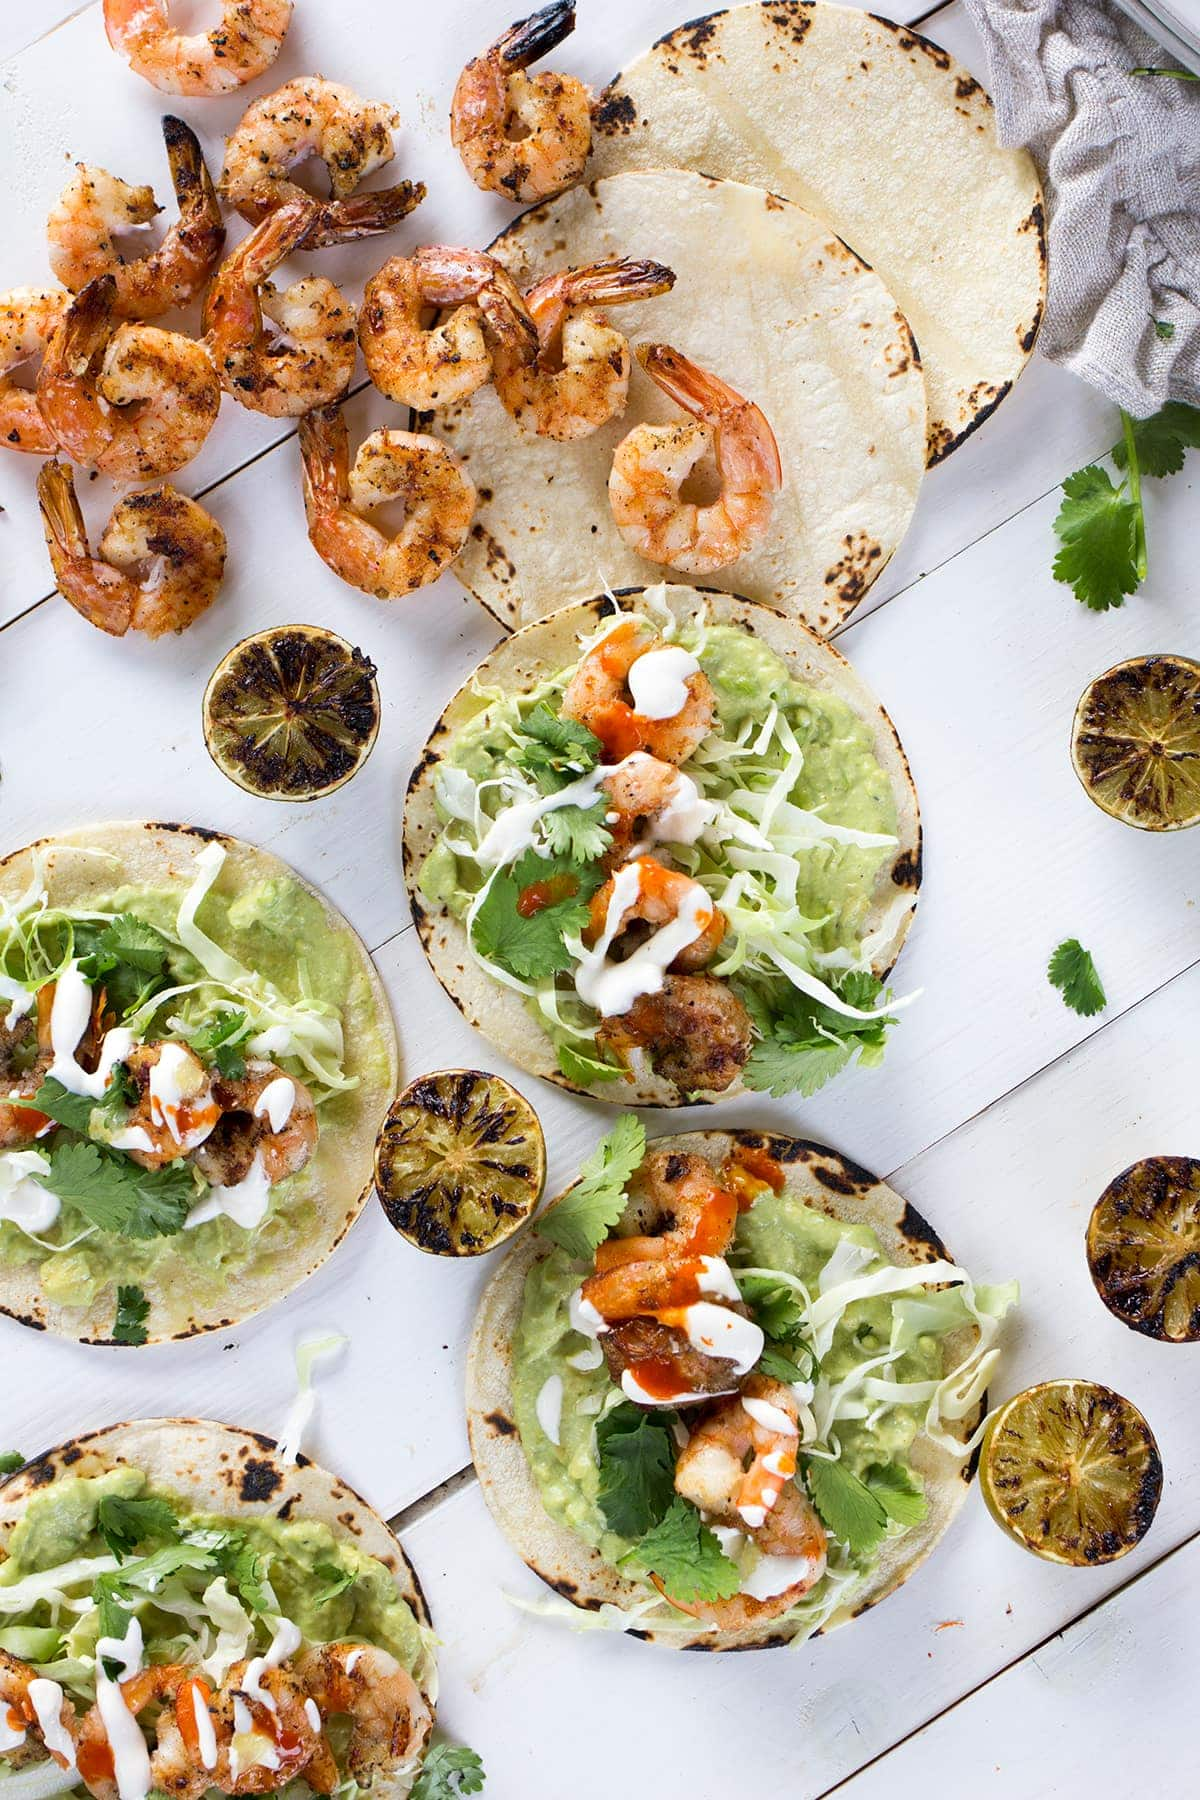 Grilled Shrimp Tacos with Avocado Crema